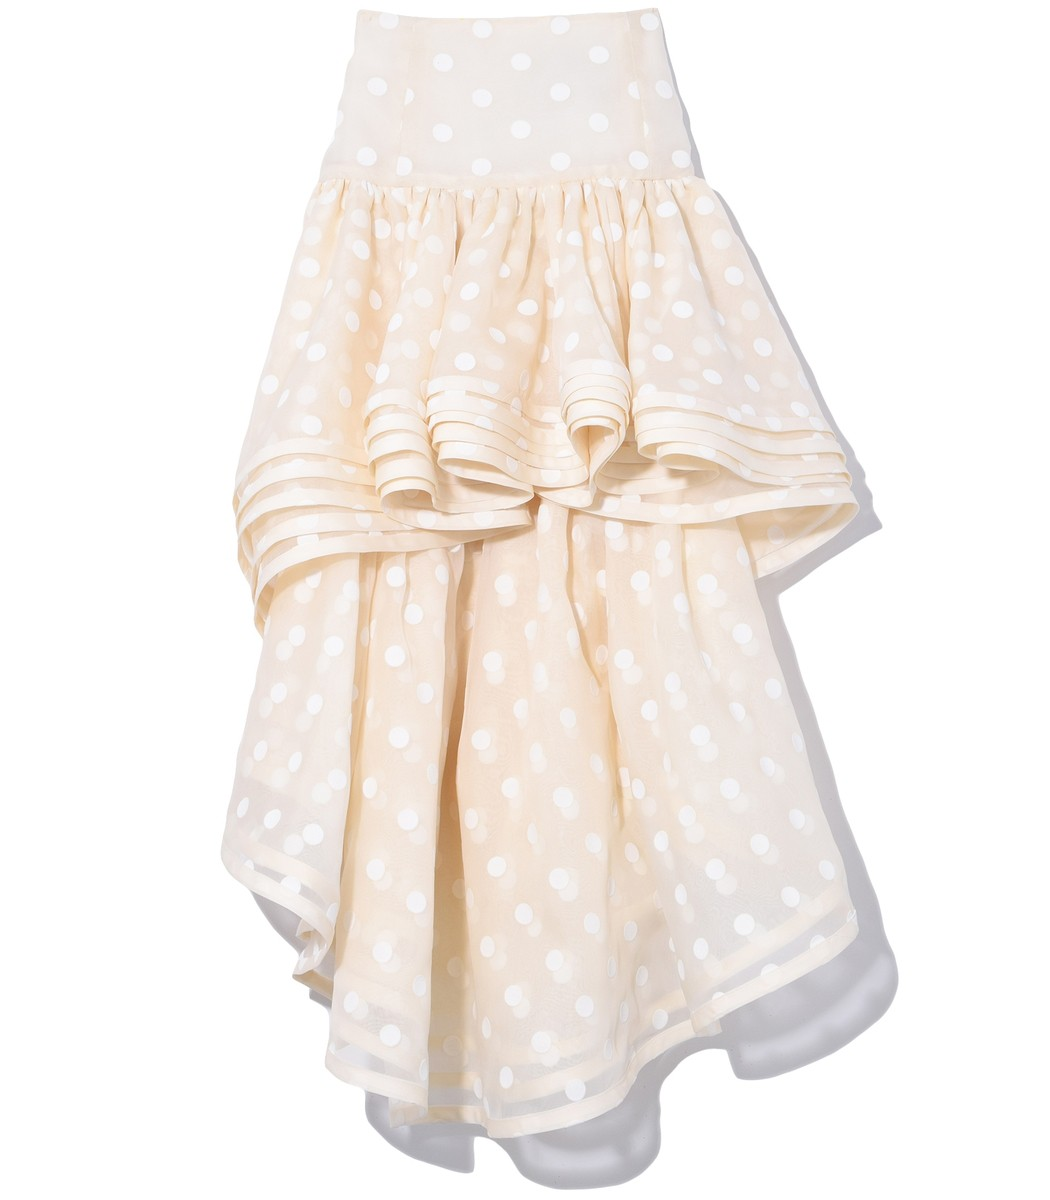 Marc Jacobs Skirts Layered Hi-Low Skirt in Ivory